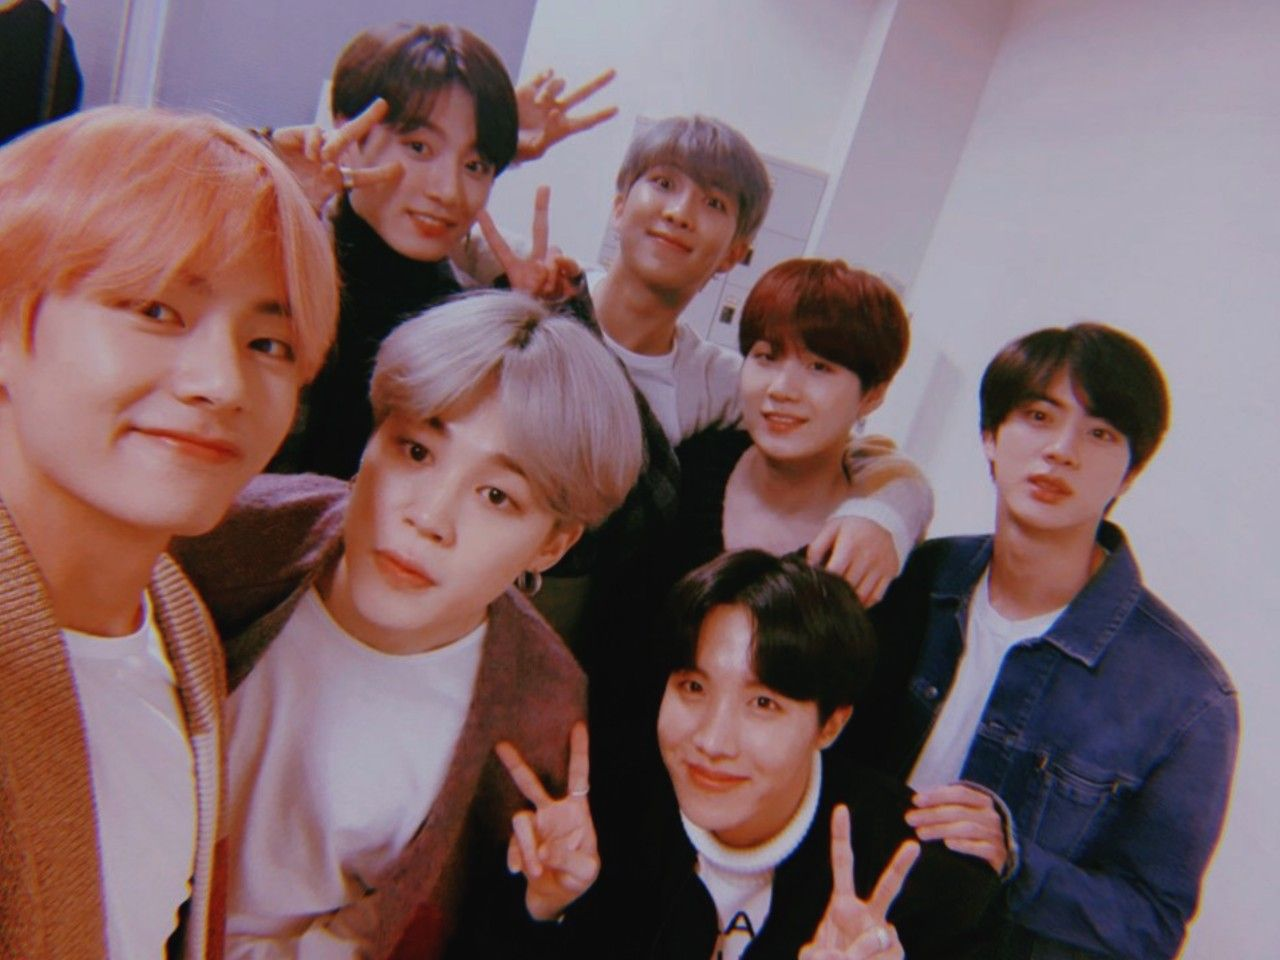 Bts Aesthetic Group Pictures